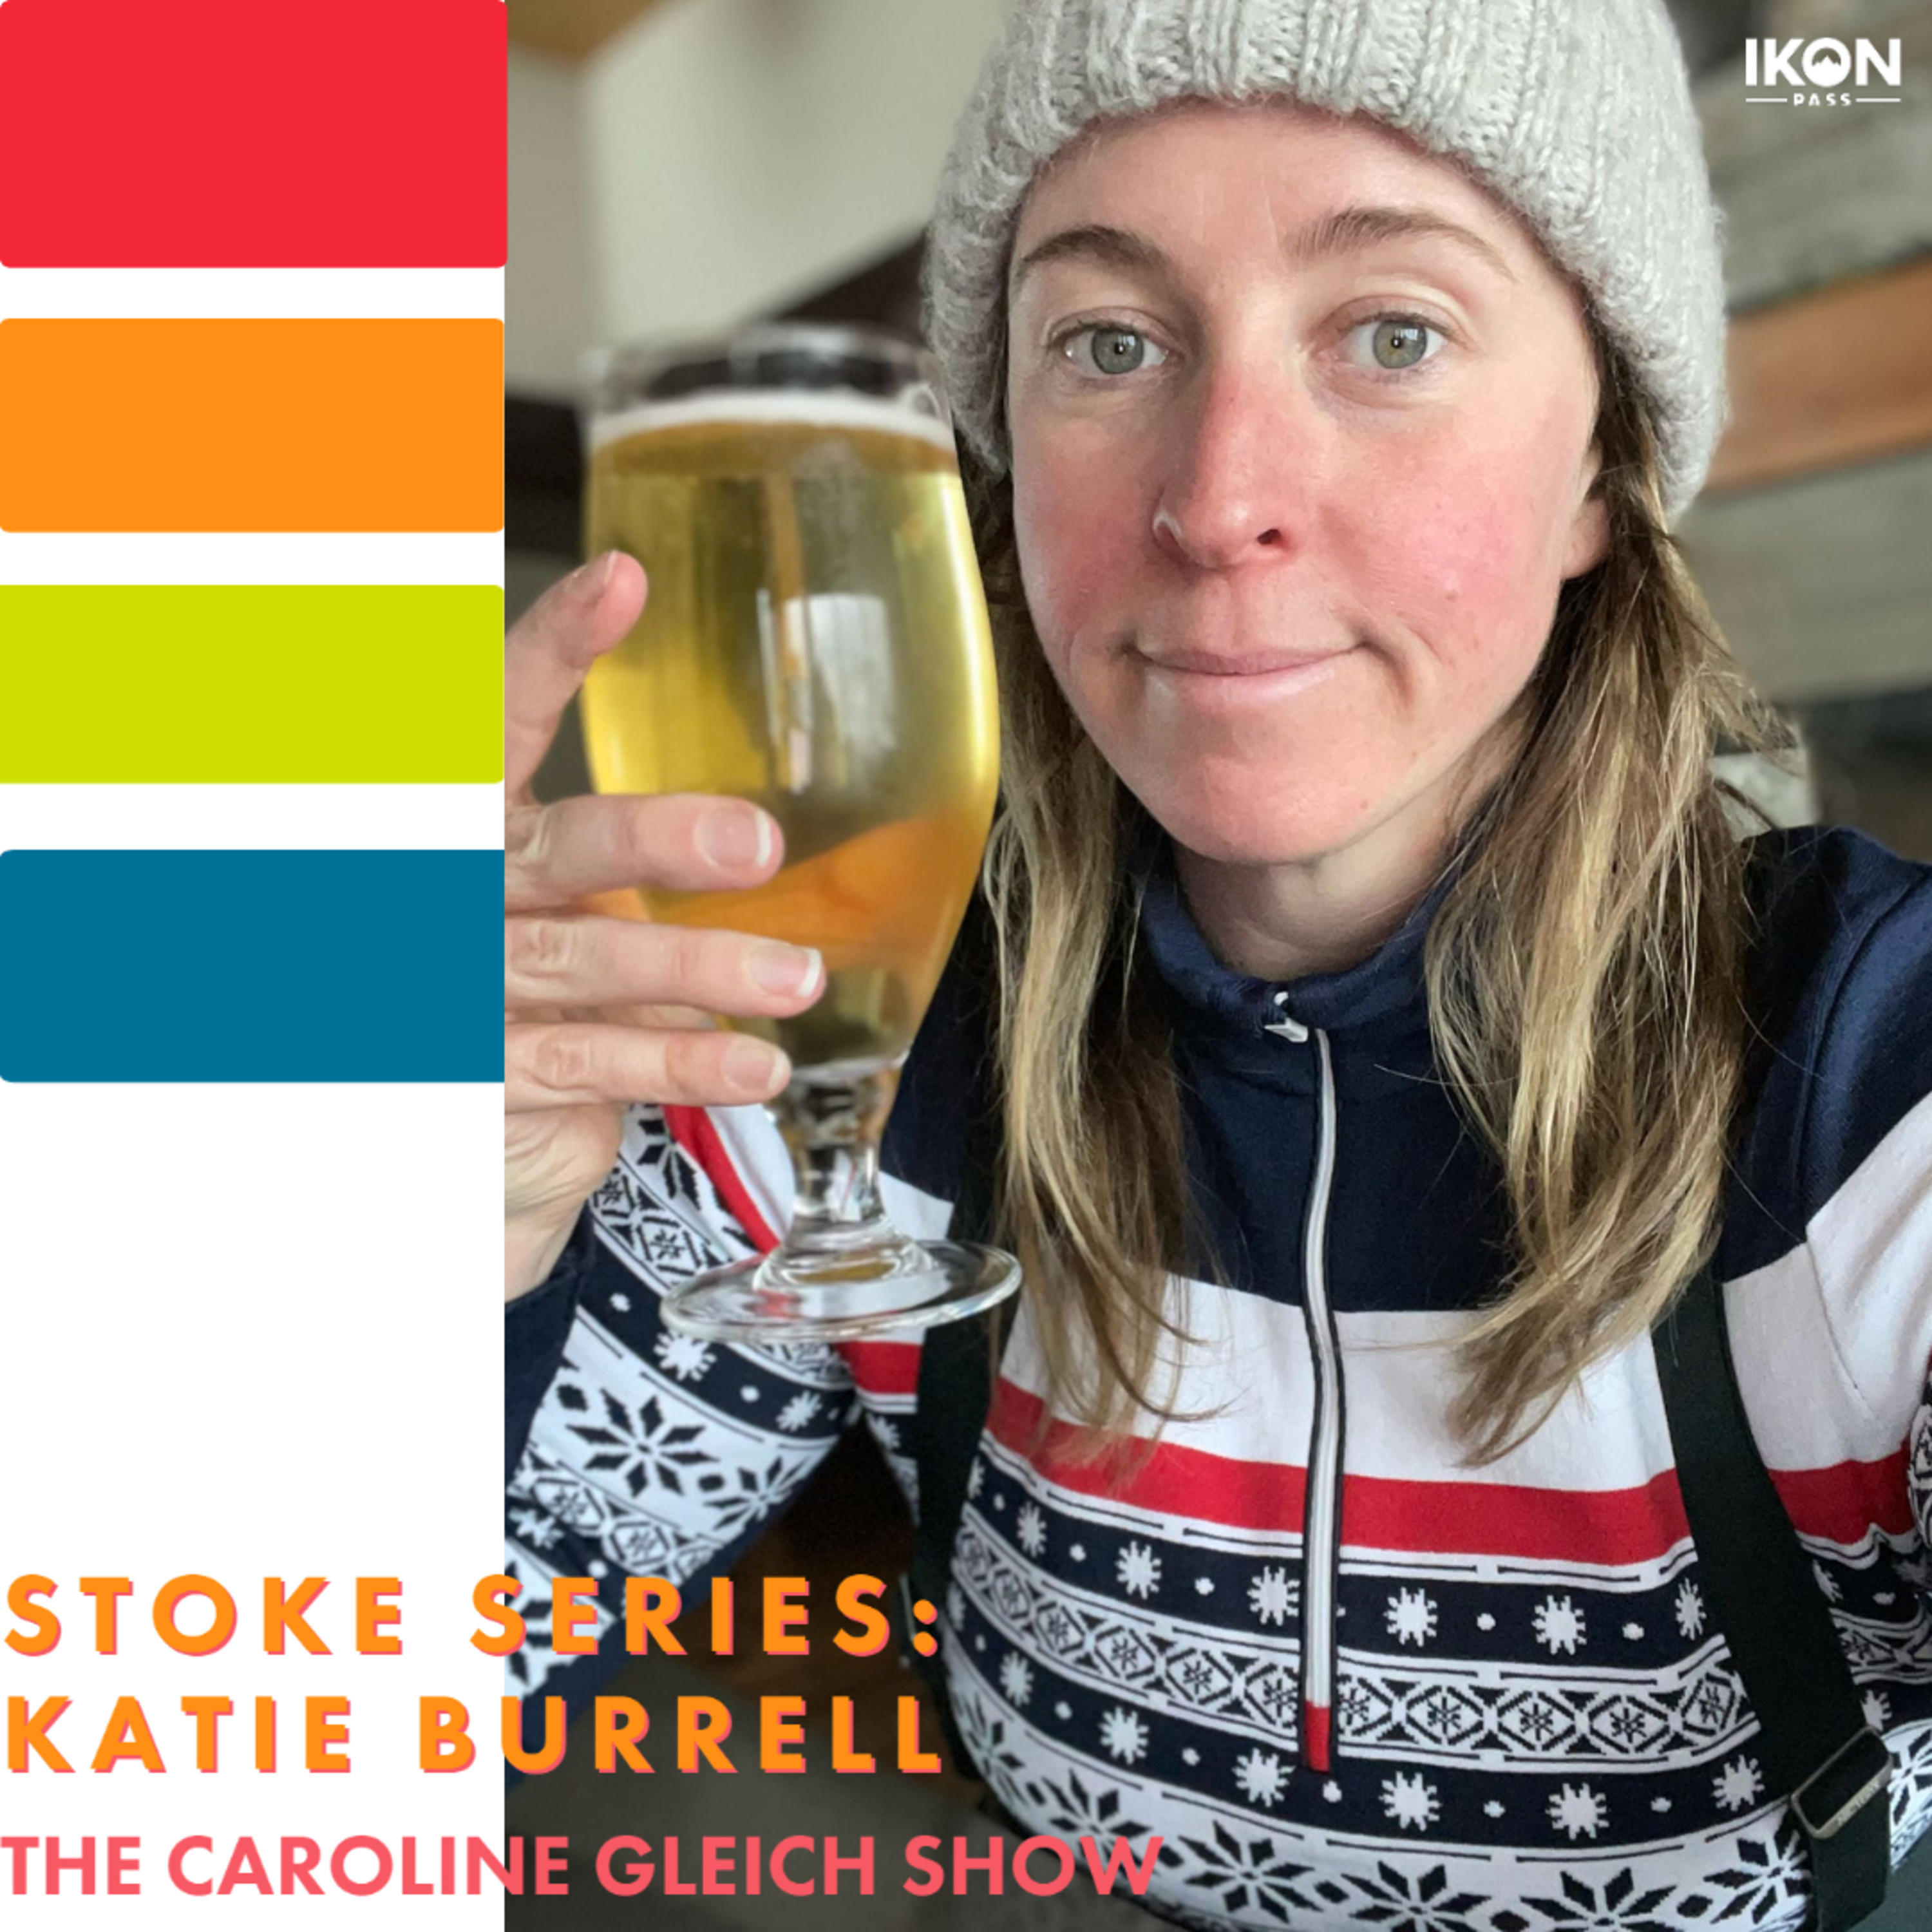 Stoke Series: Bringing Comedy to Skiing with Katie Burrell